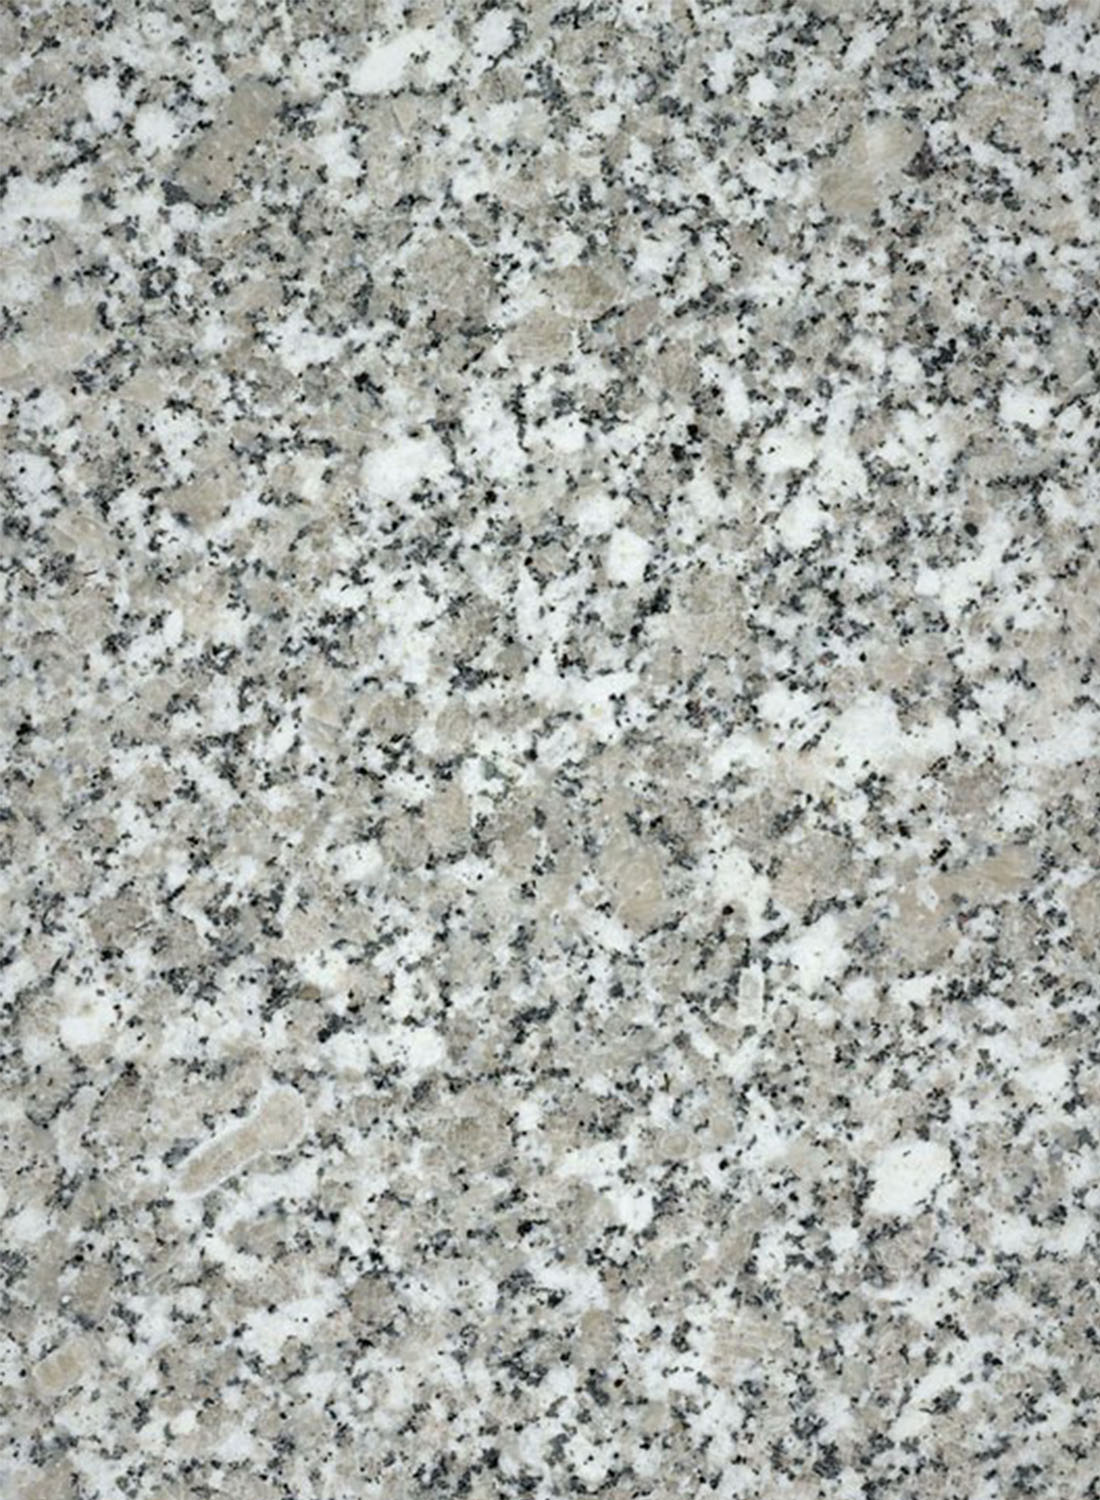 Vietnam Granite Vietnamese Granite Colors Vietnam Grey